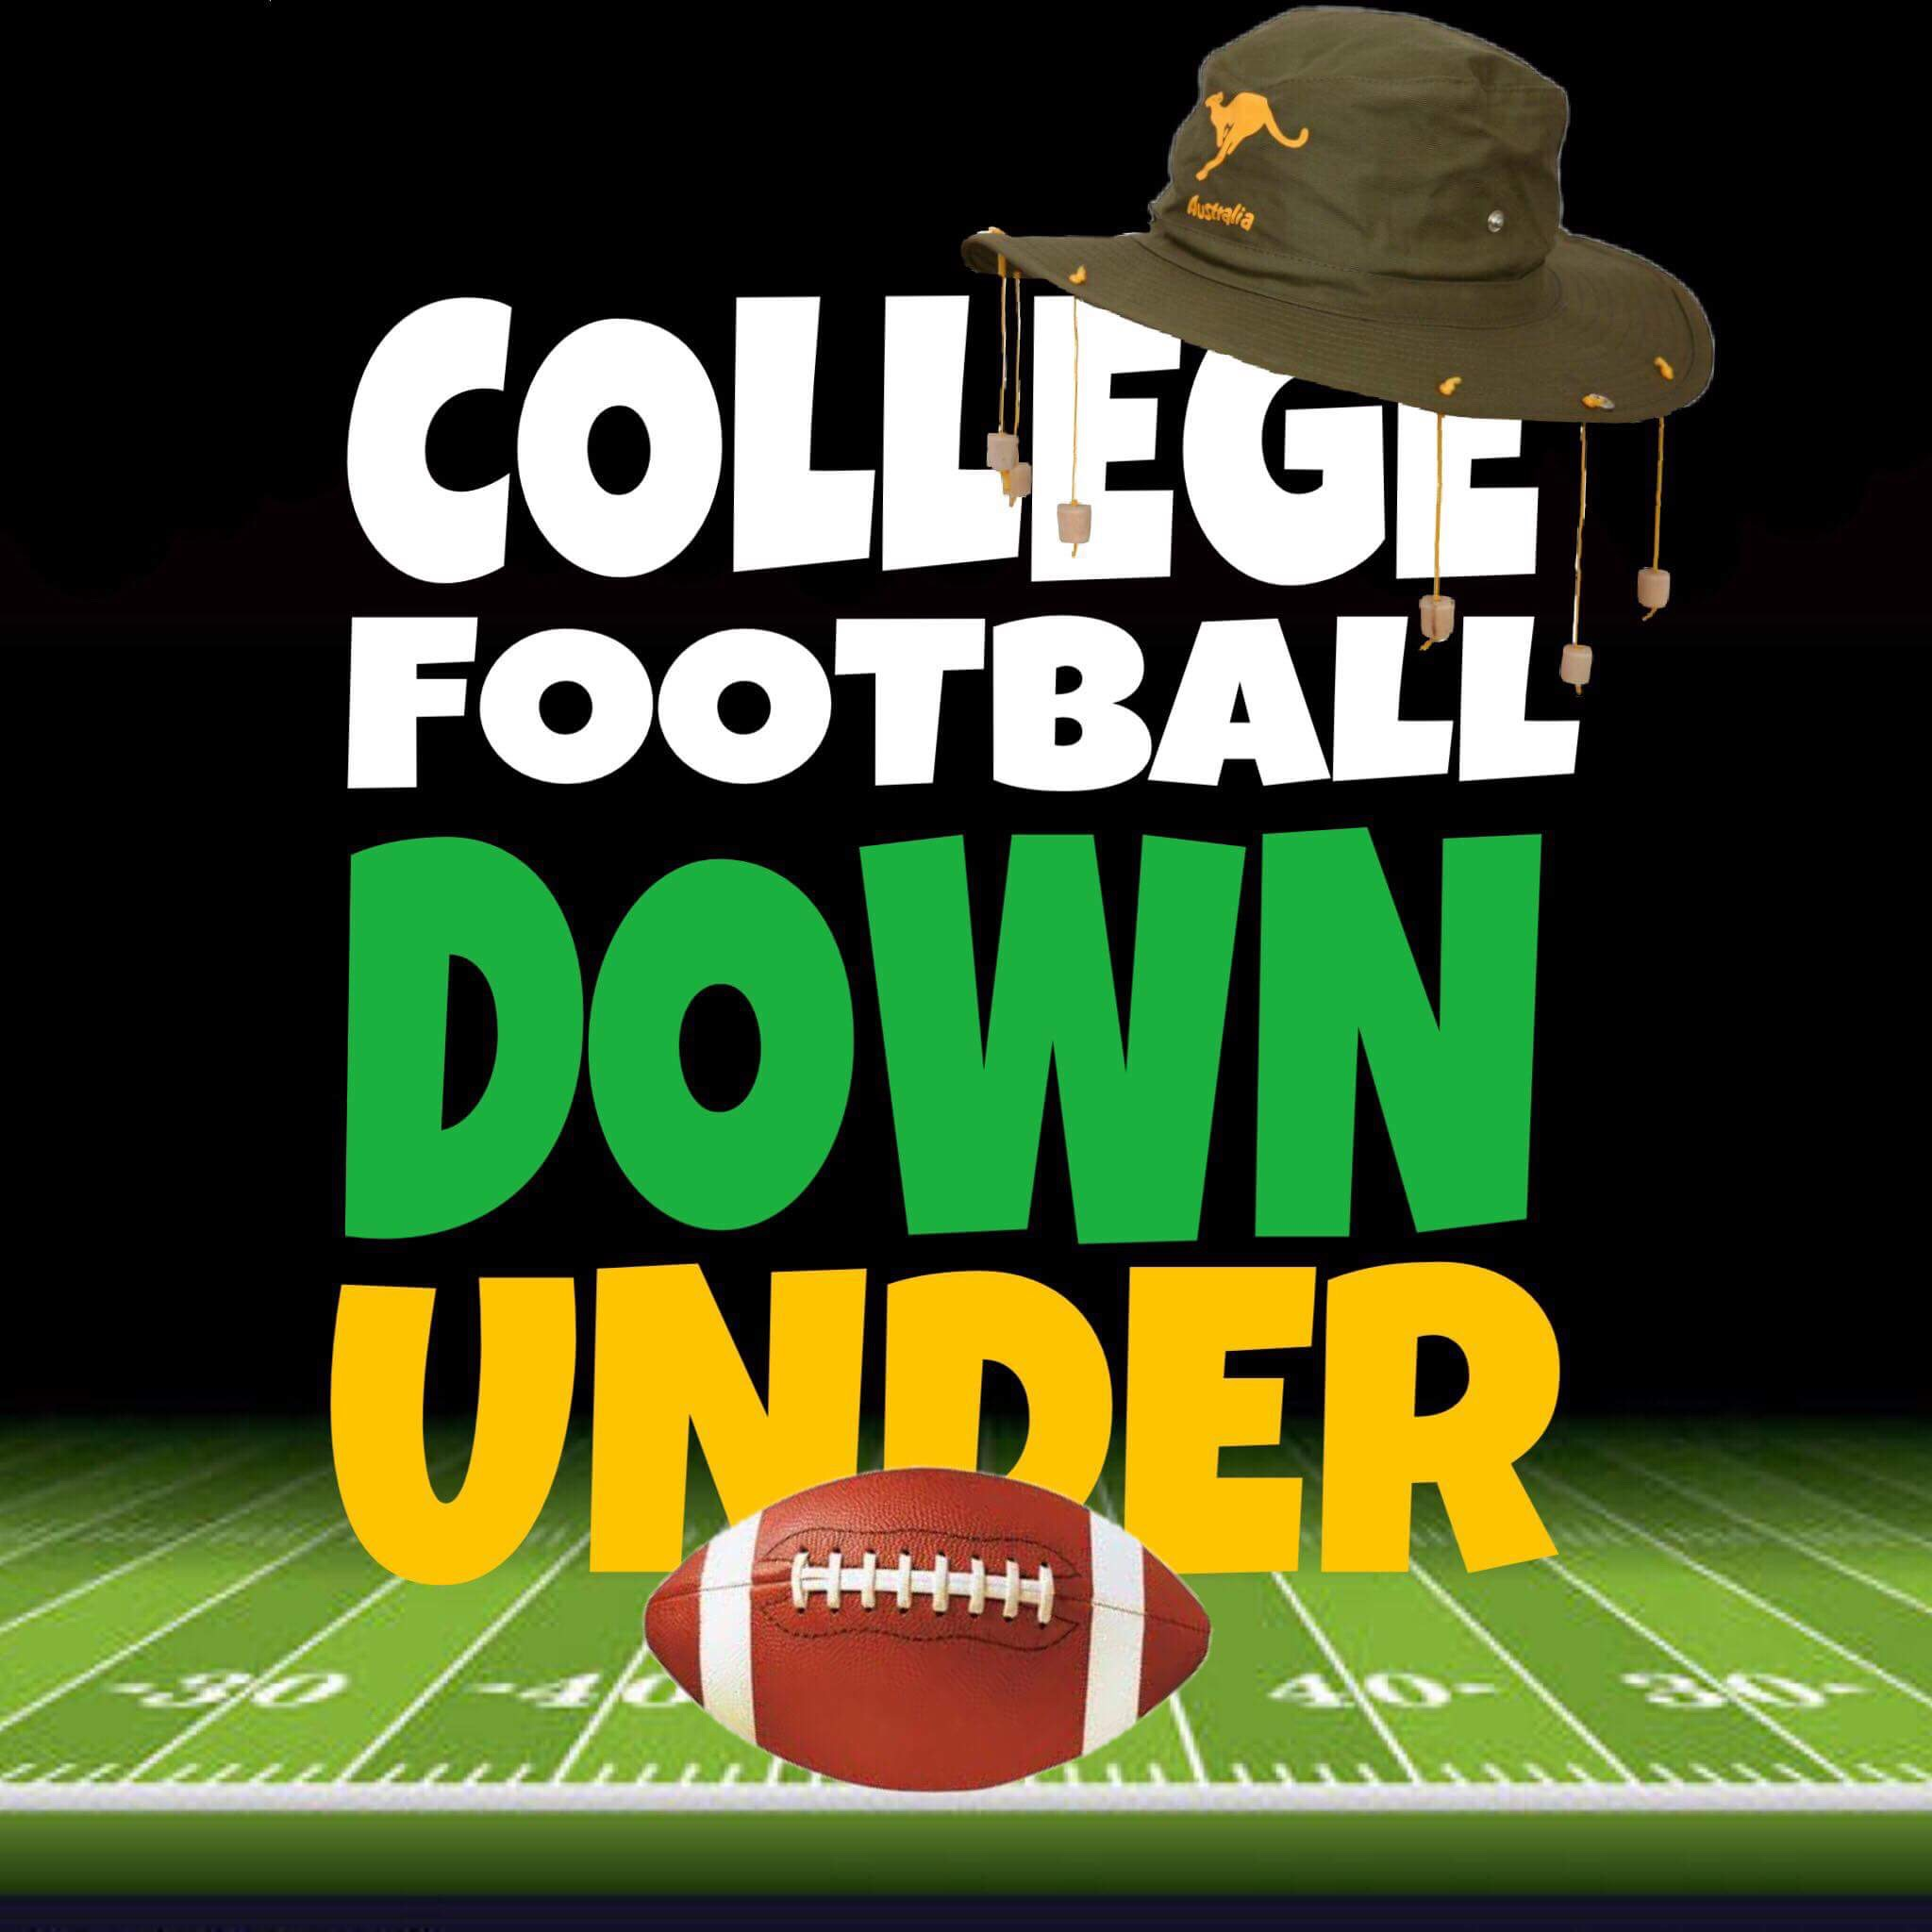 College Football Down Under